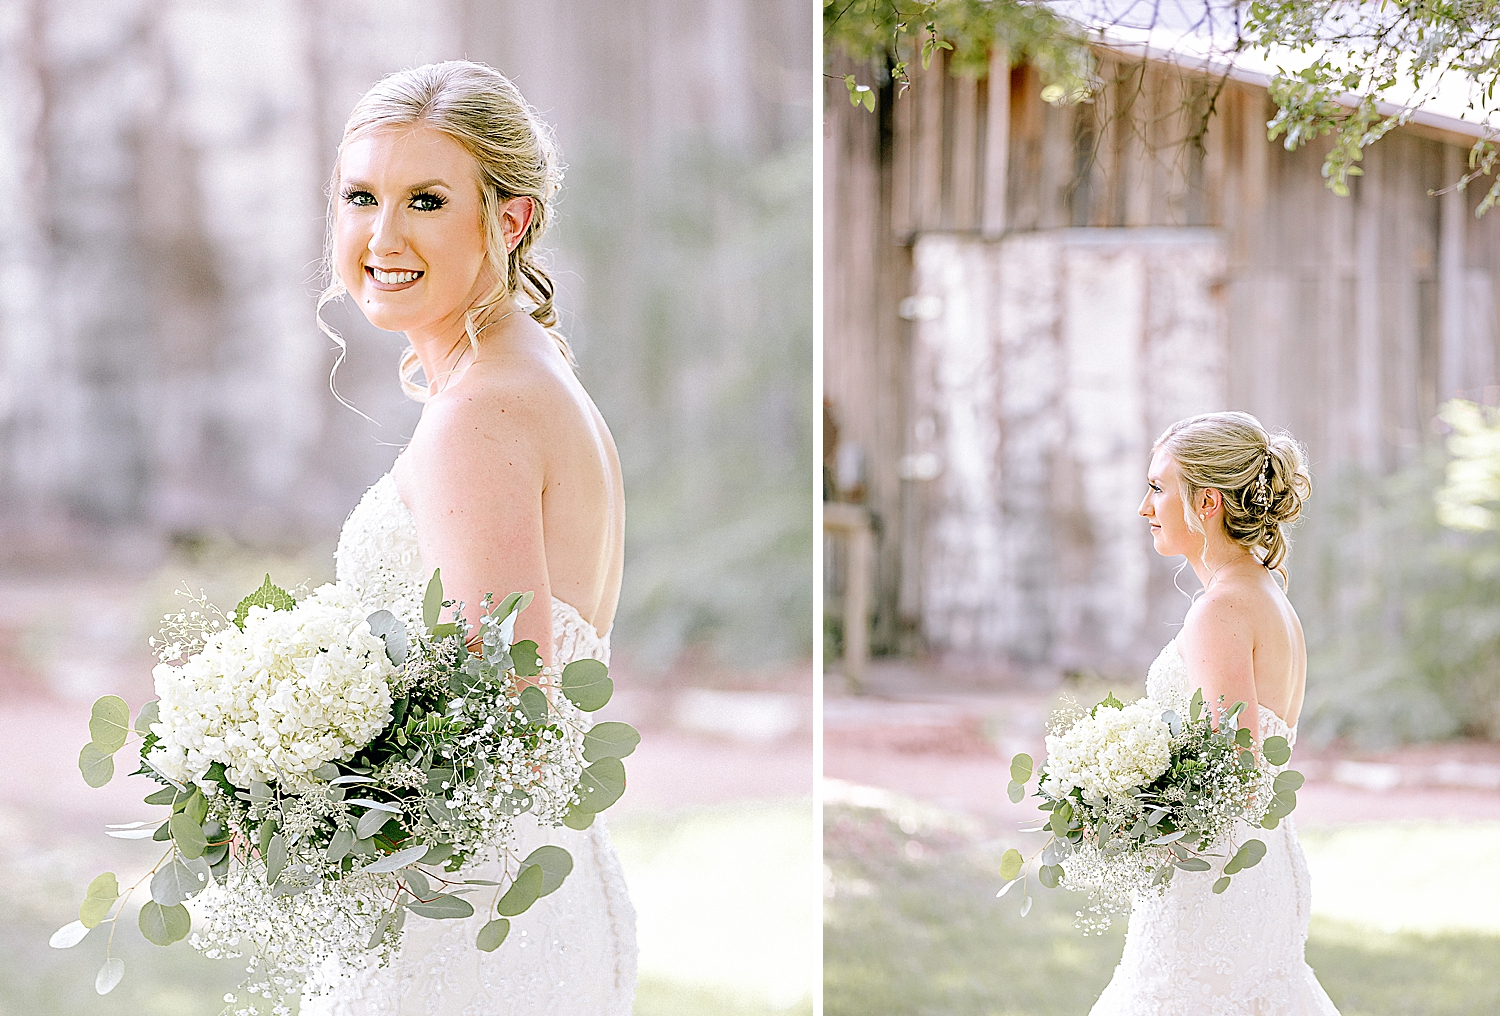 Carly-Barton-Photography-Bridal-Photos-Gruene-Rustic-New-Braunfels-Wedding-Photographer_0015.jpg